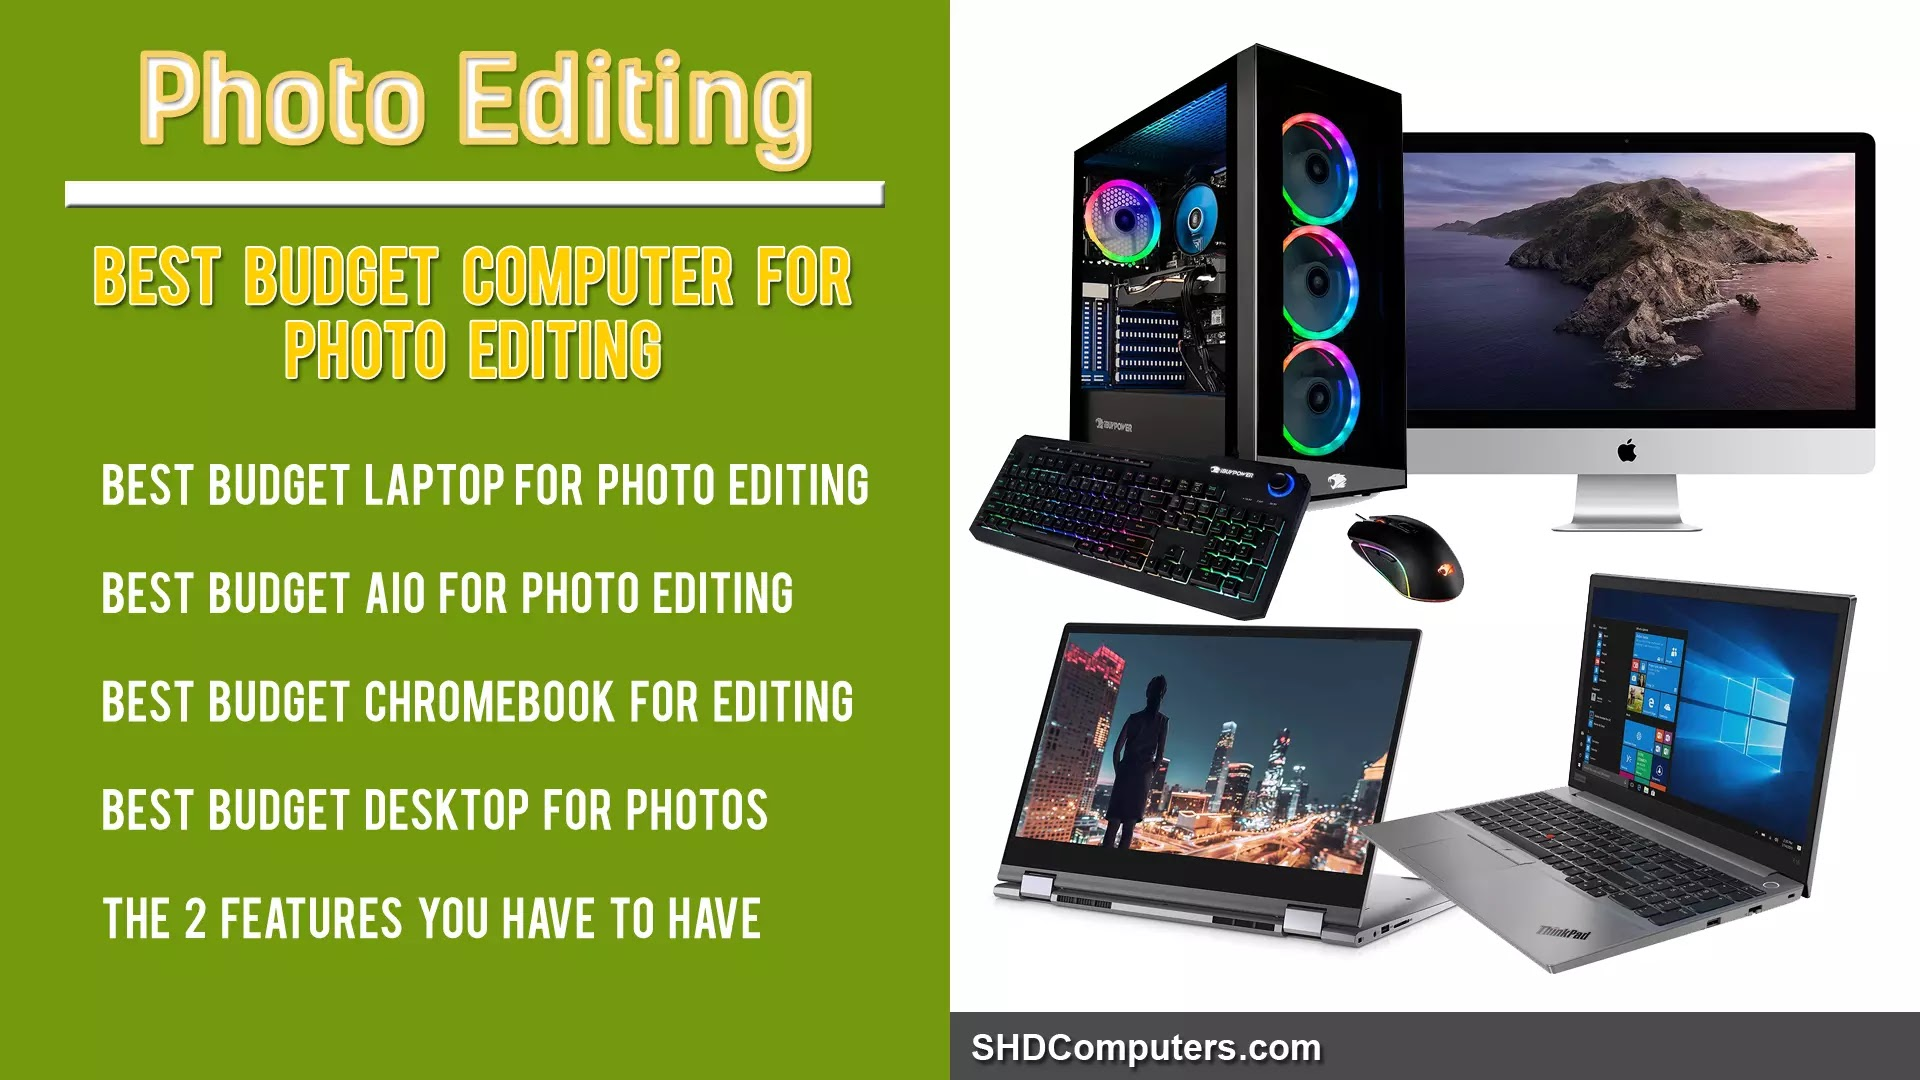 Best budget computer for photo editing - SHDComputers